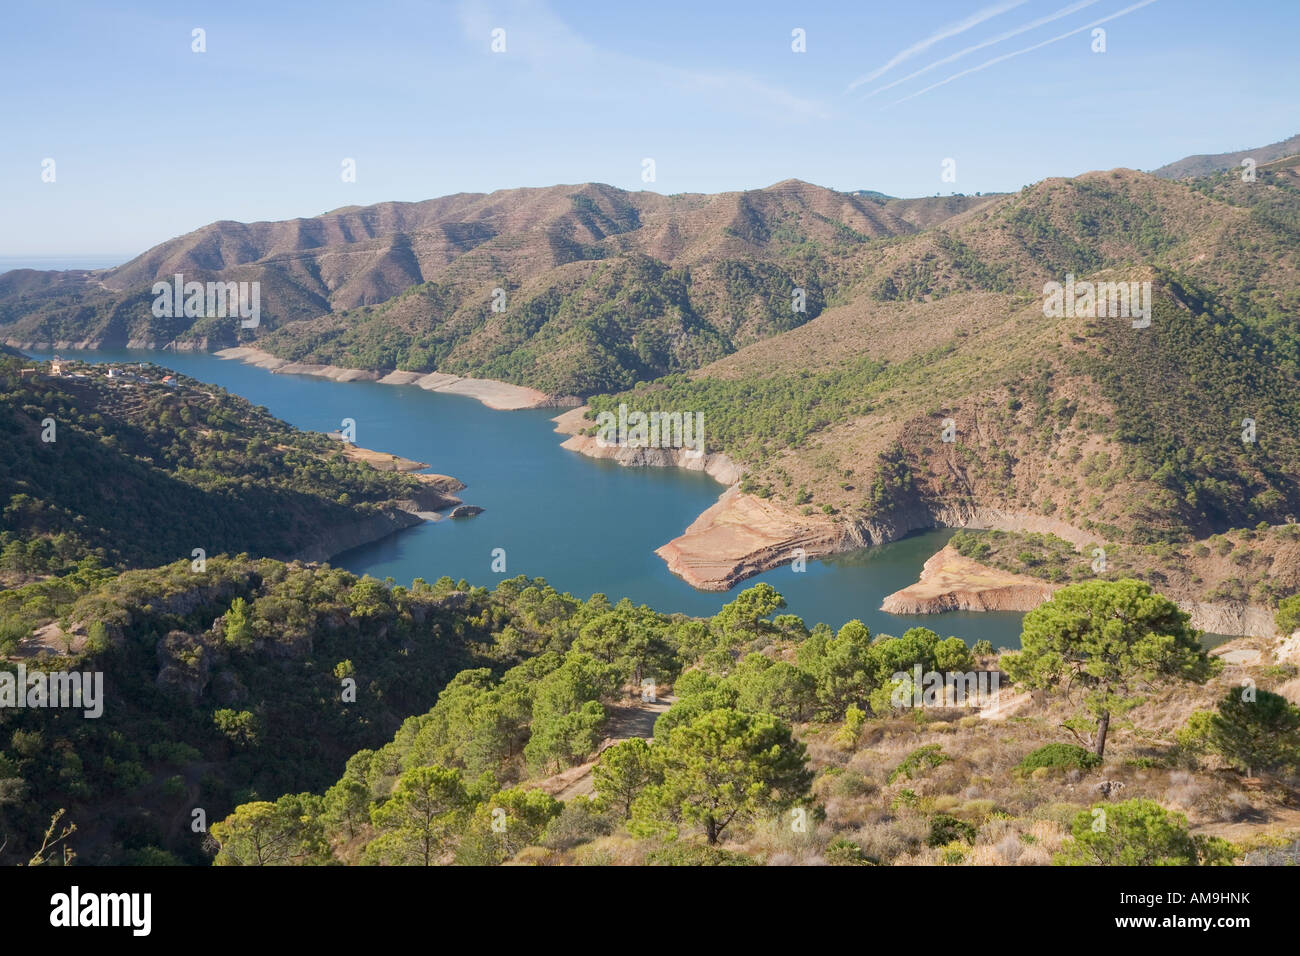 near istan malaga province costa sol spain embalse de